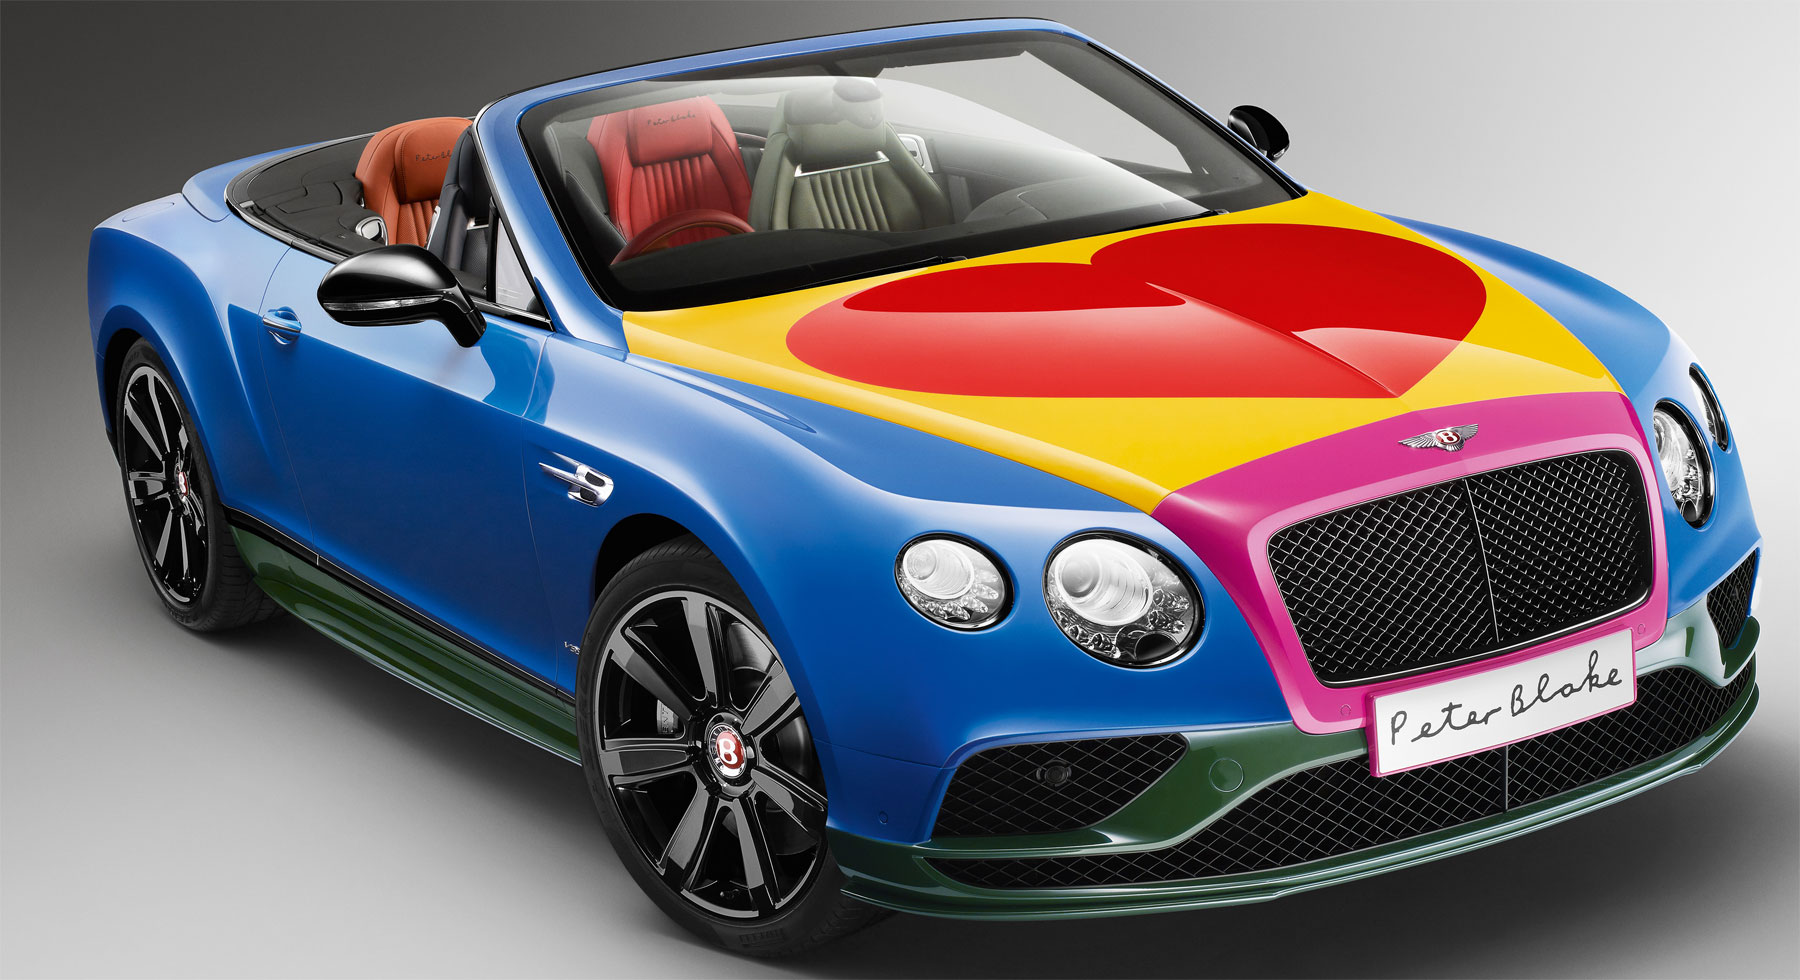 Bentley unveils new Pop Art Bentley V8 by artist Sir Peter Blake